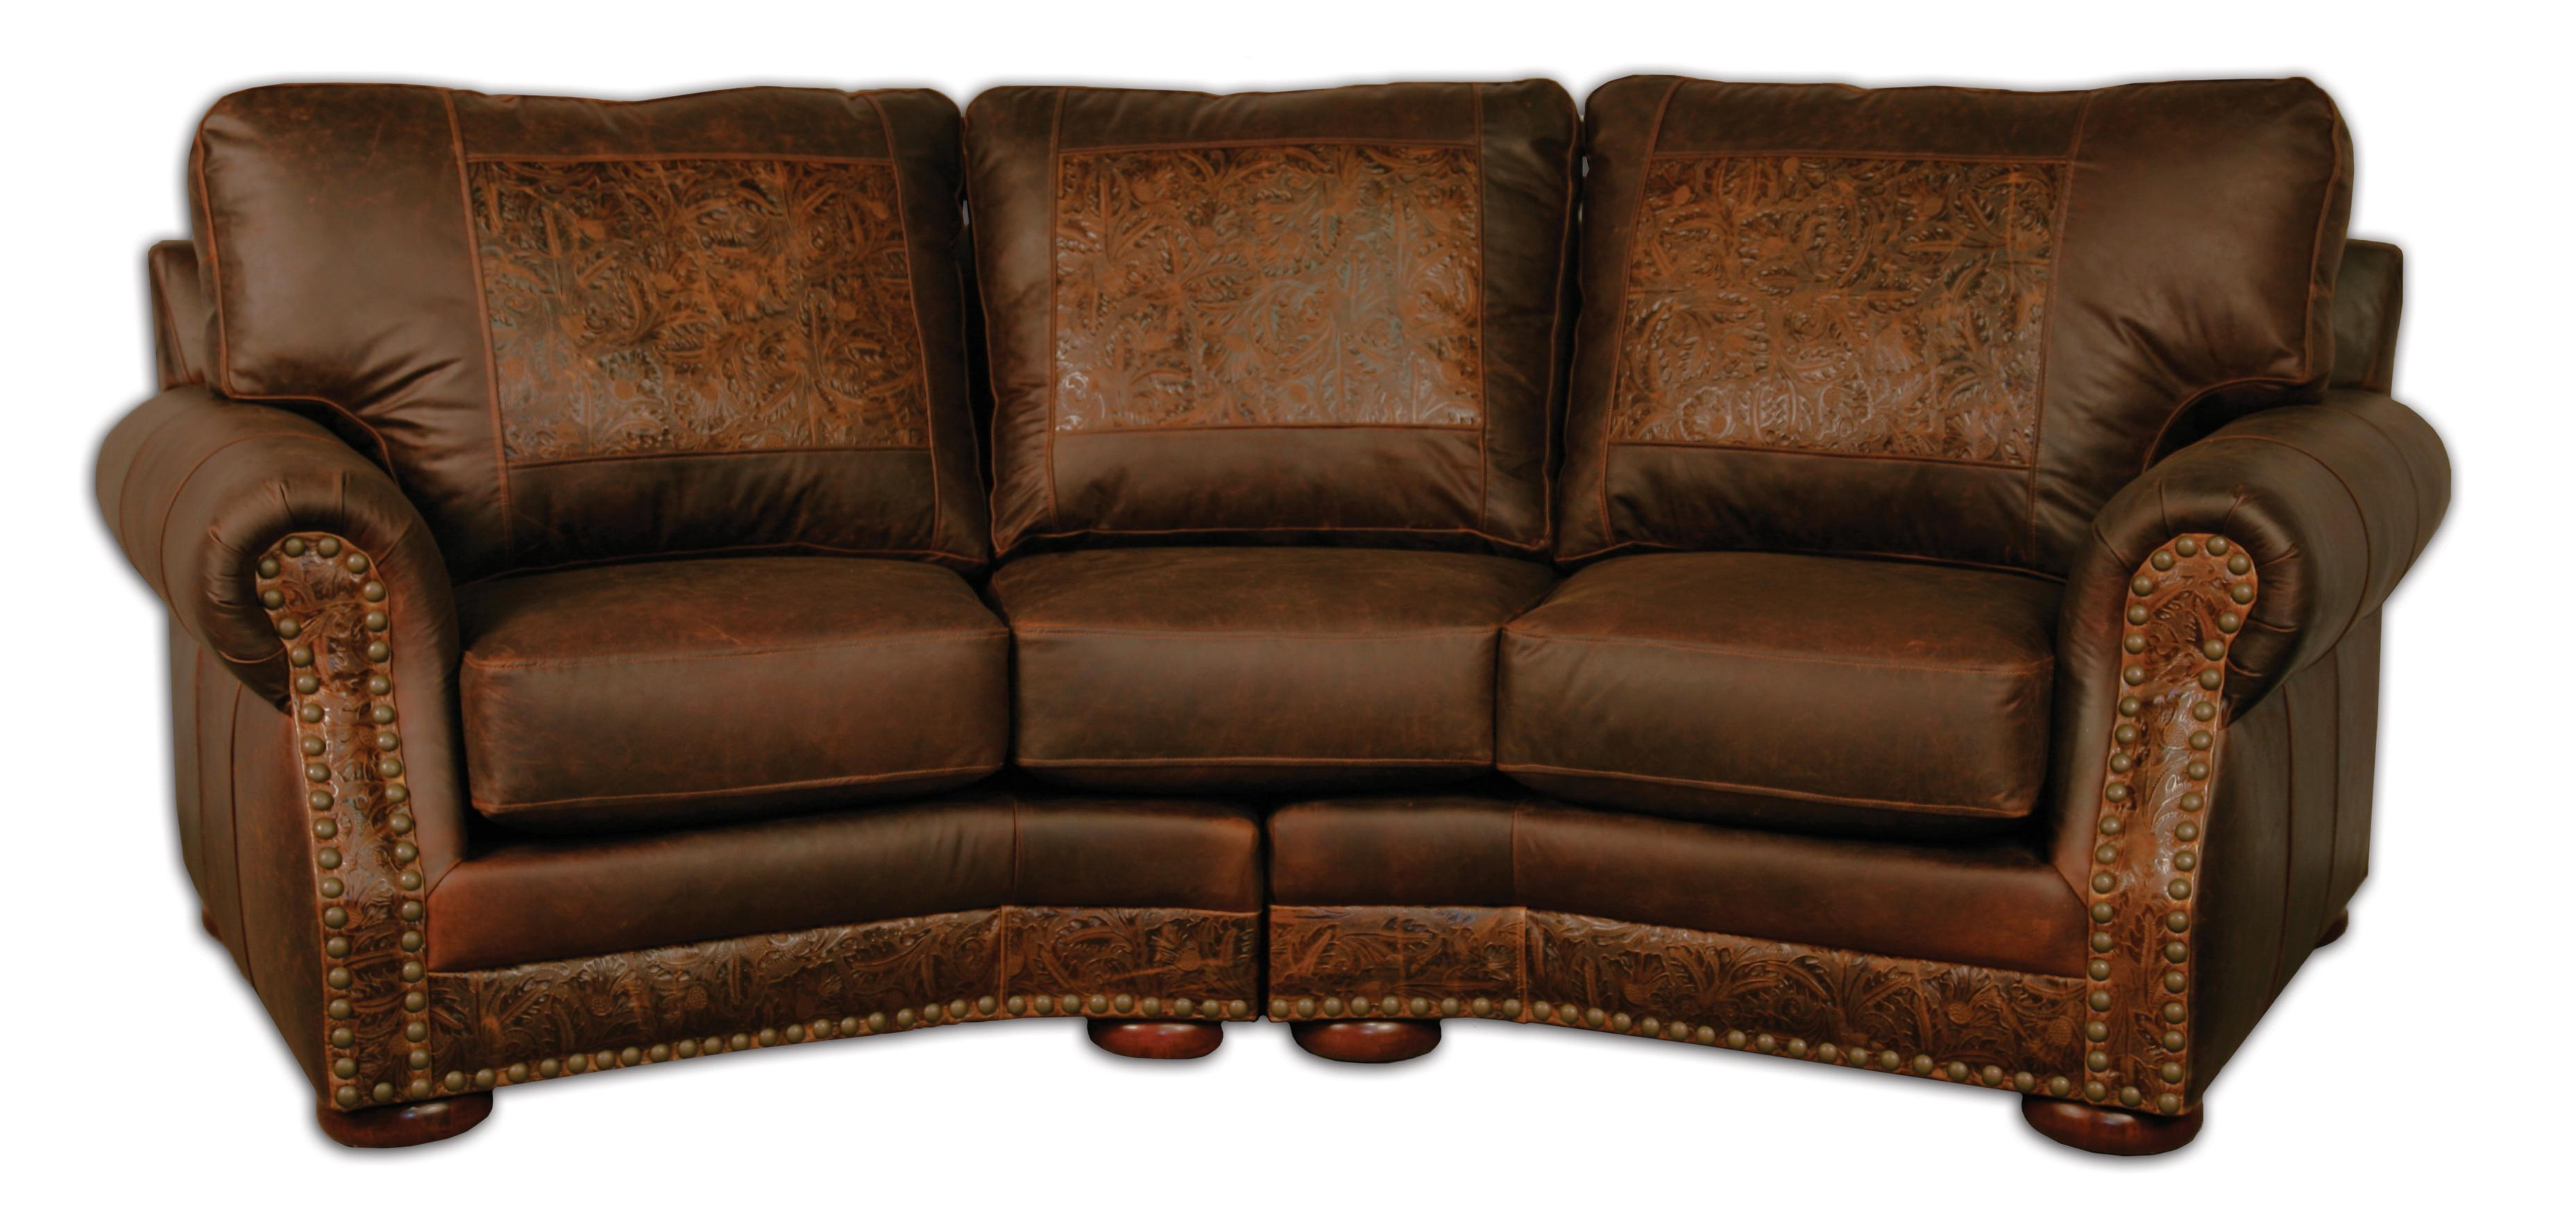 Cameron Sofa Chairs In Newest Cameron Ranch Conversation Sofa Dejavu Holster & Cosmo Tooled Leather (Gallery 8 of 20)